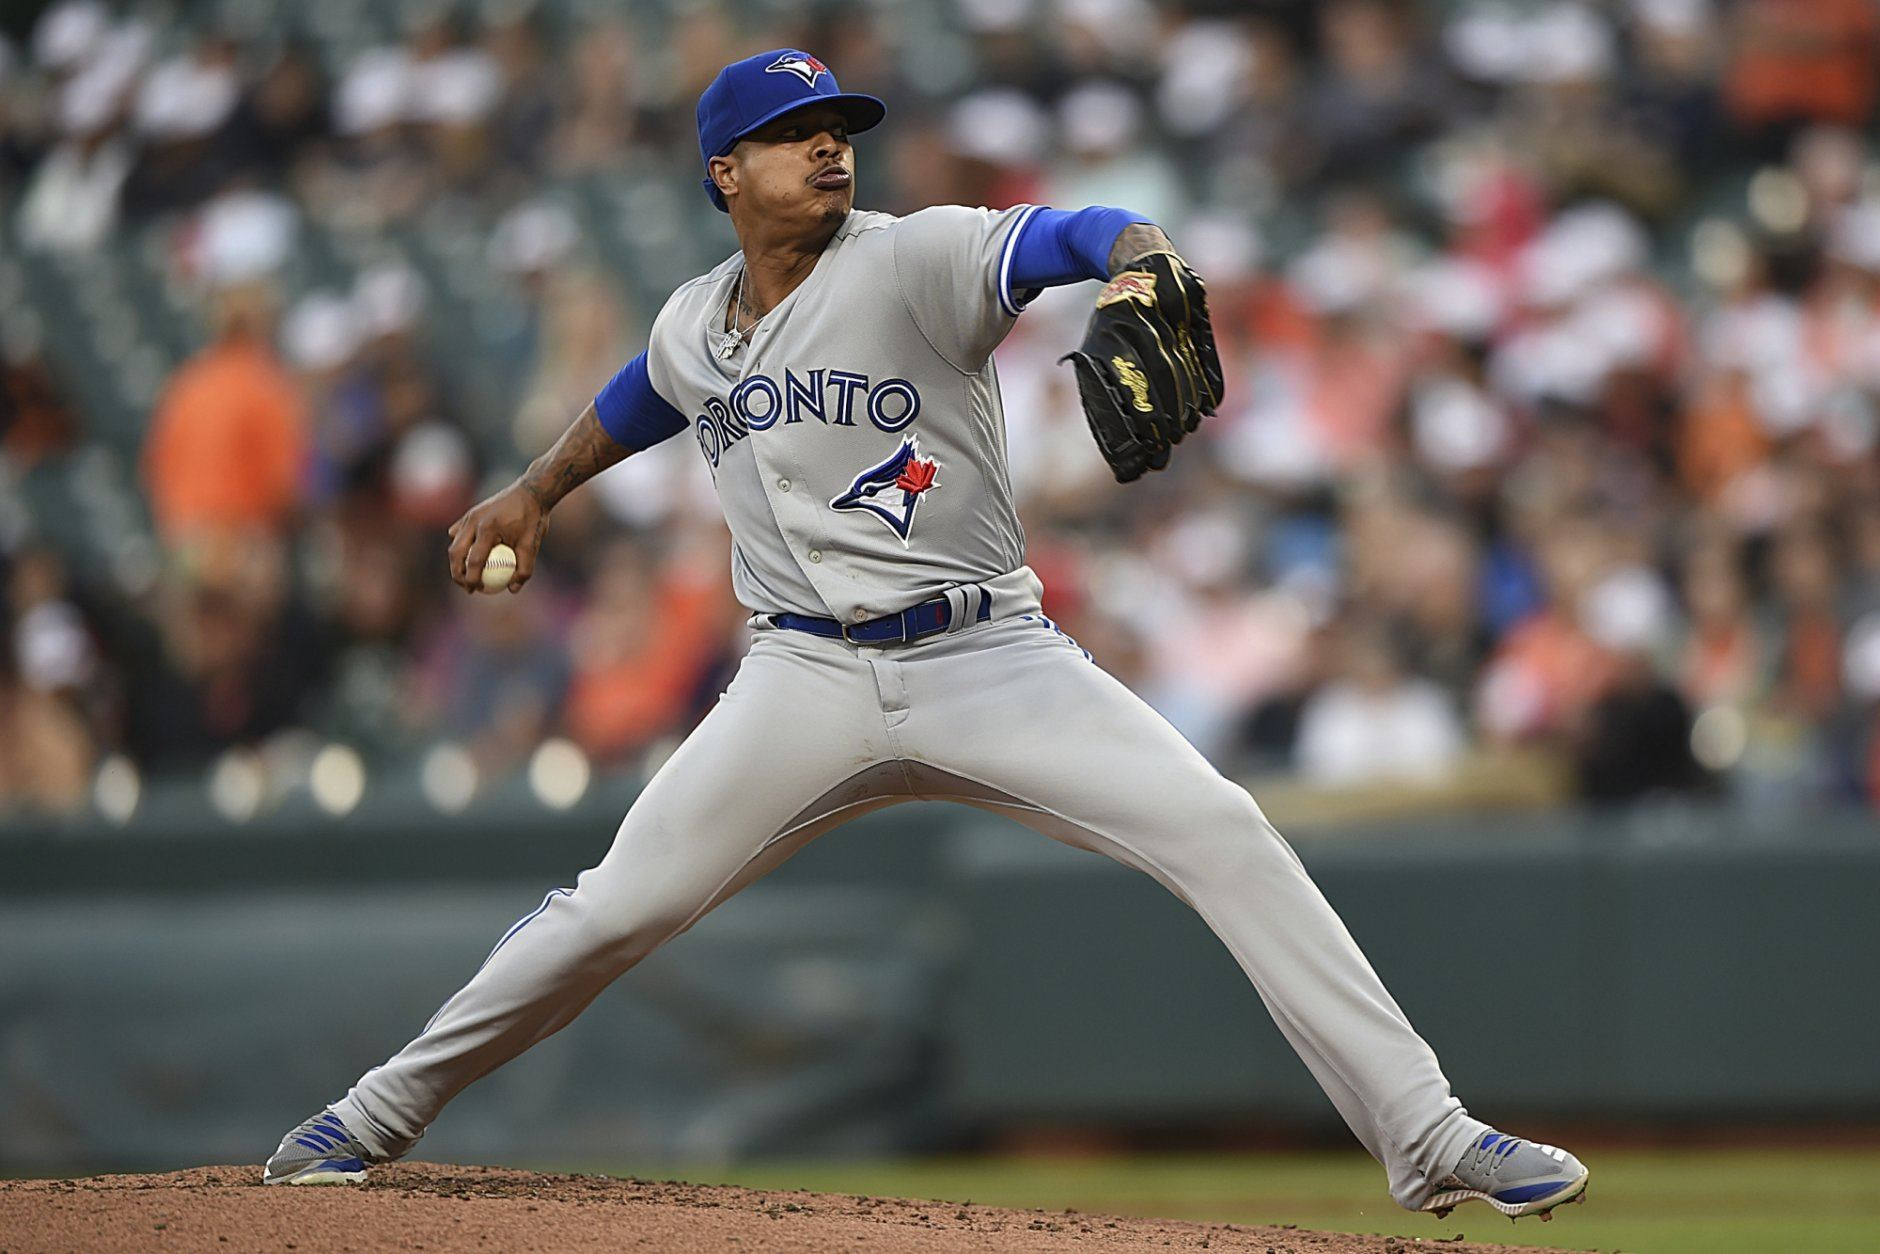 Toronto Blue Jays pitcher Marcus Stroman throws to a Baltimore Orioles batter during the first inning of a baseball game Thursday, June 13, 2019, in Baltimore. (AP Photo/Gail Burton)